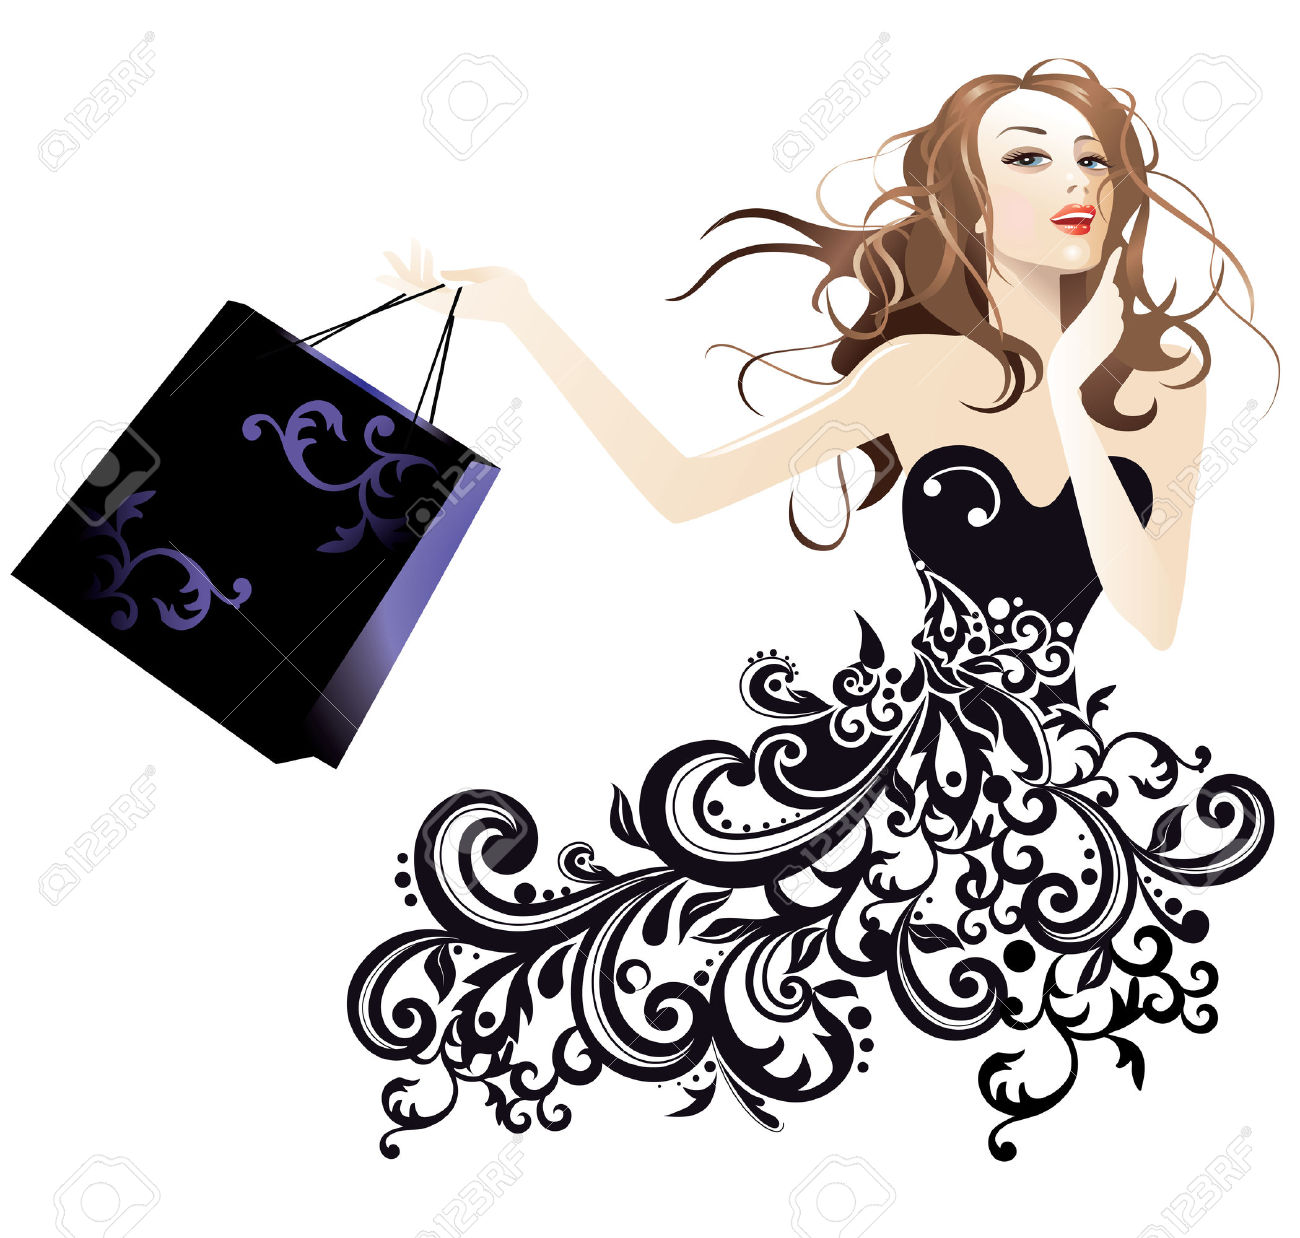 Ladies fashion clipart 8 » Clipart Station.